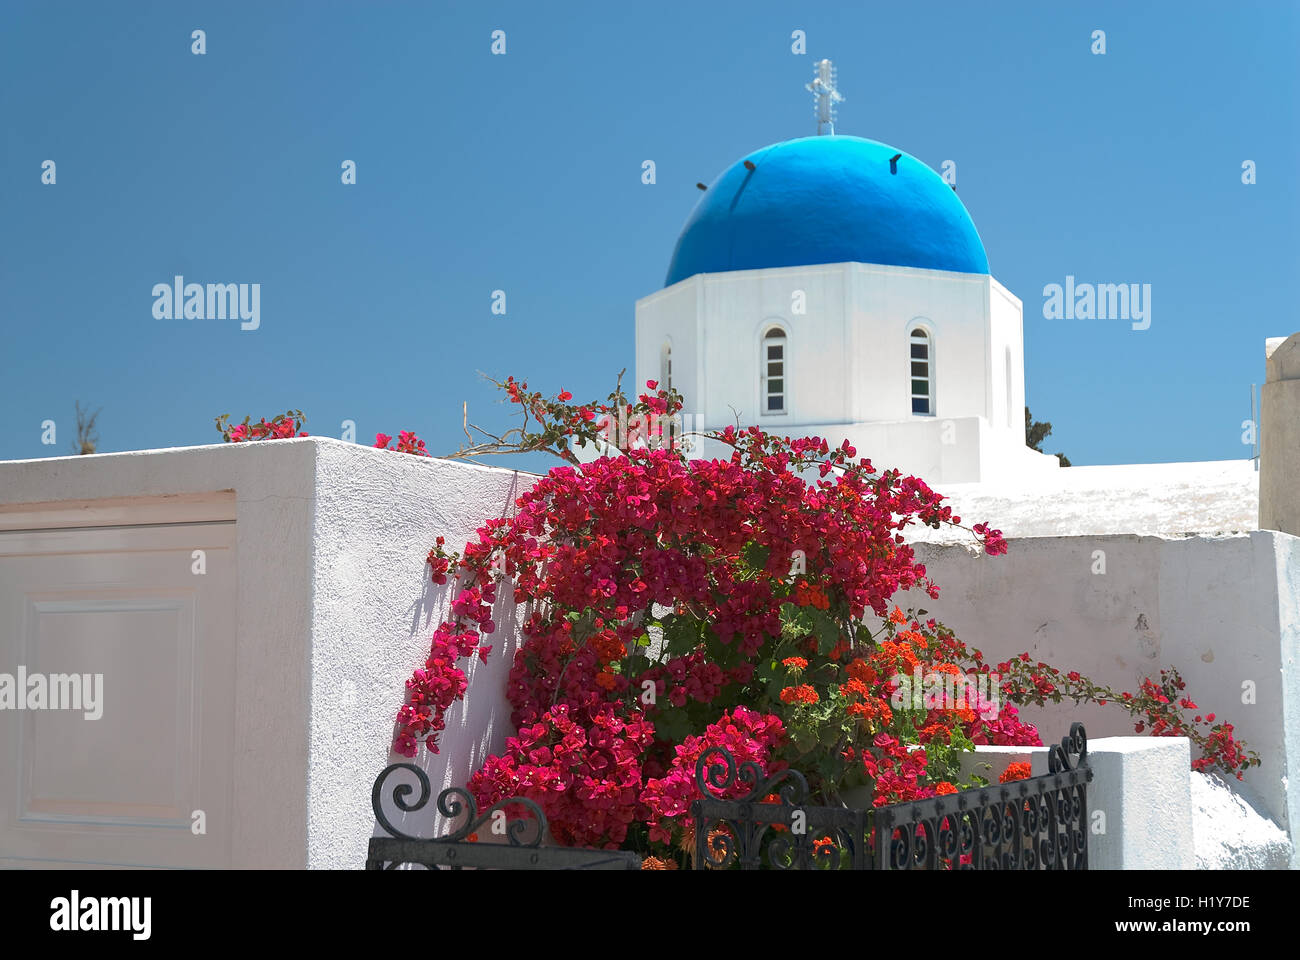 red bush and blue cupola - Stock Image